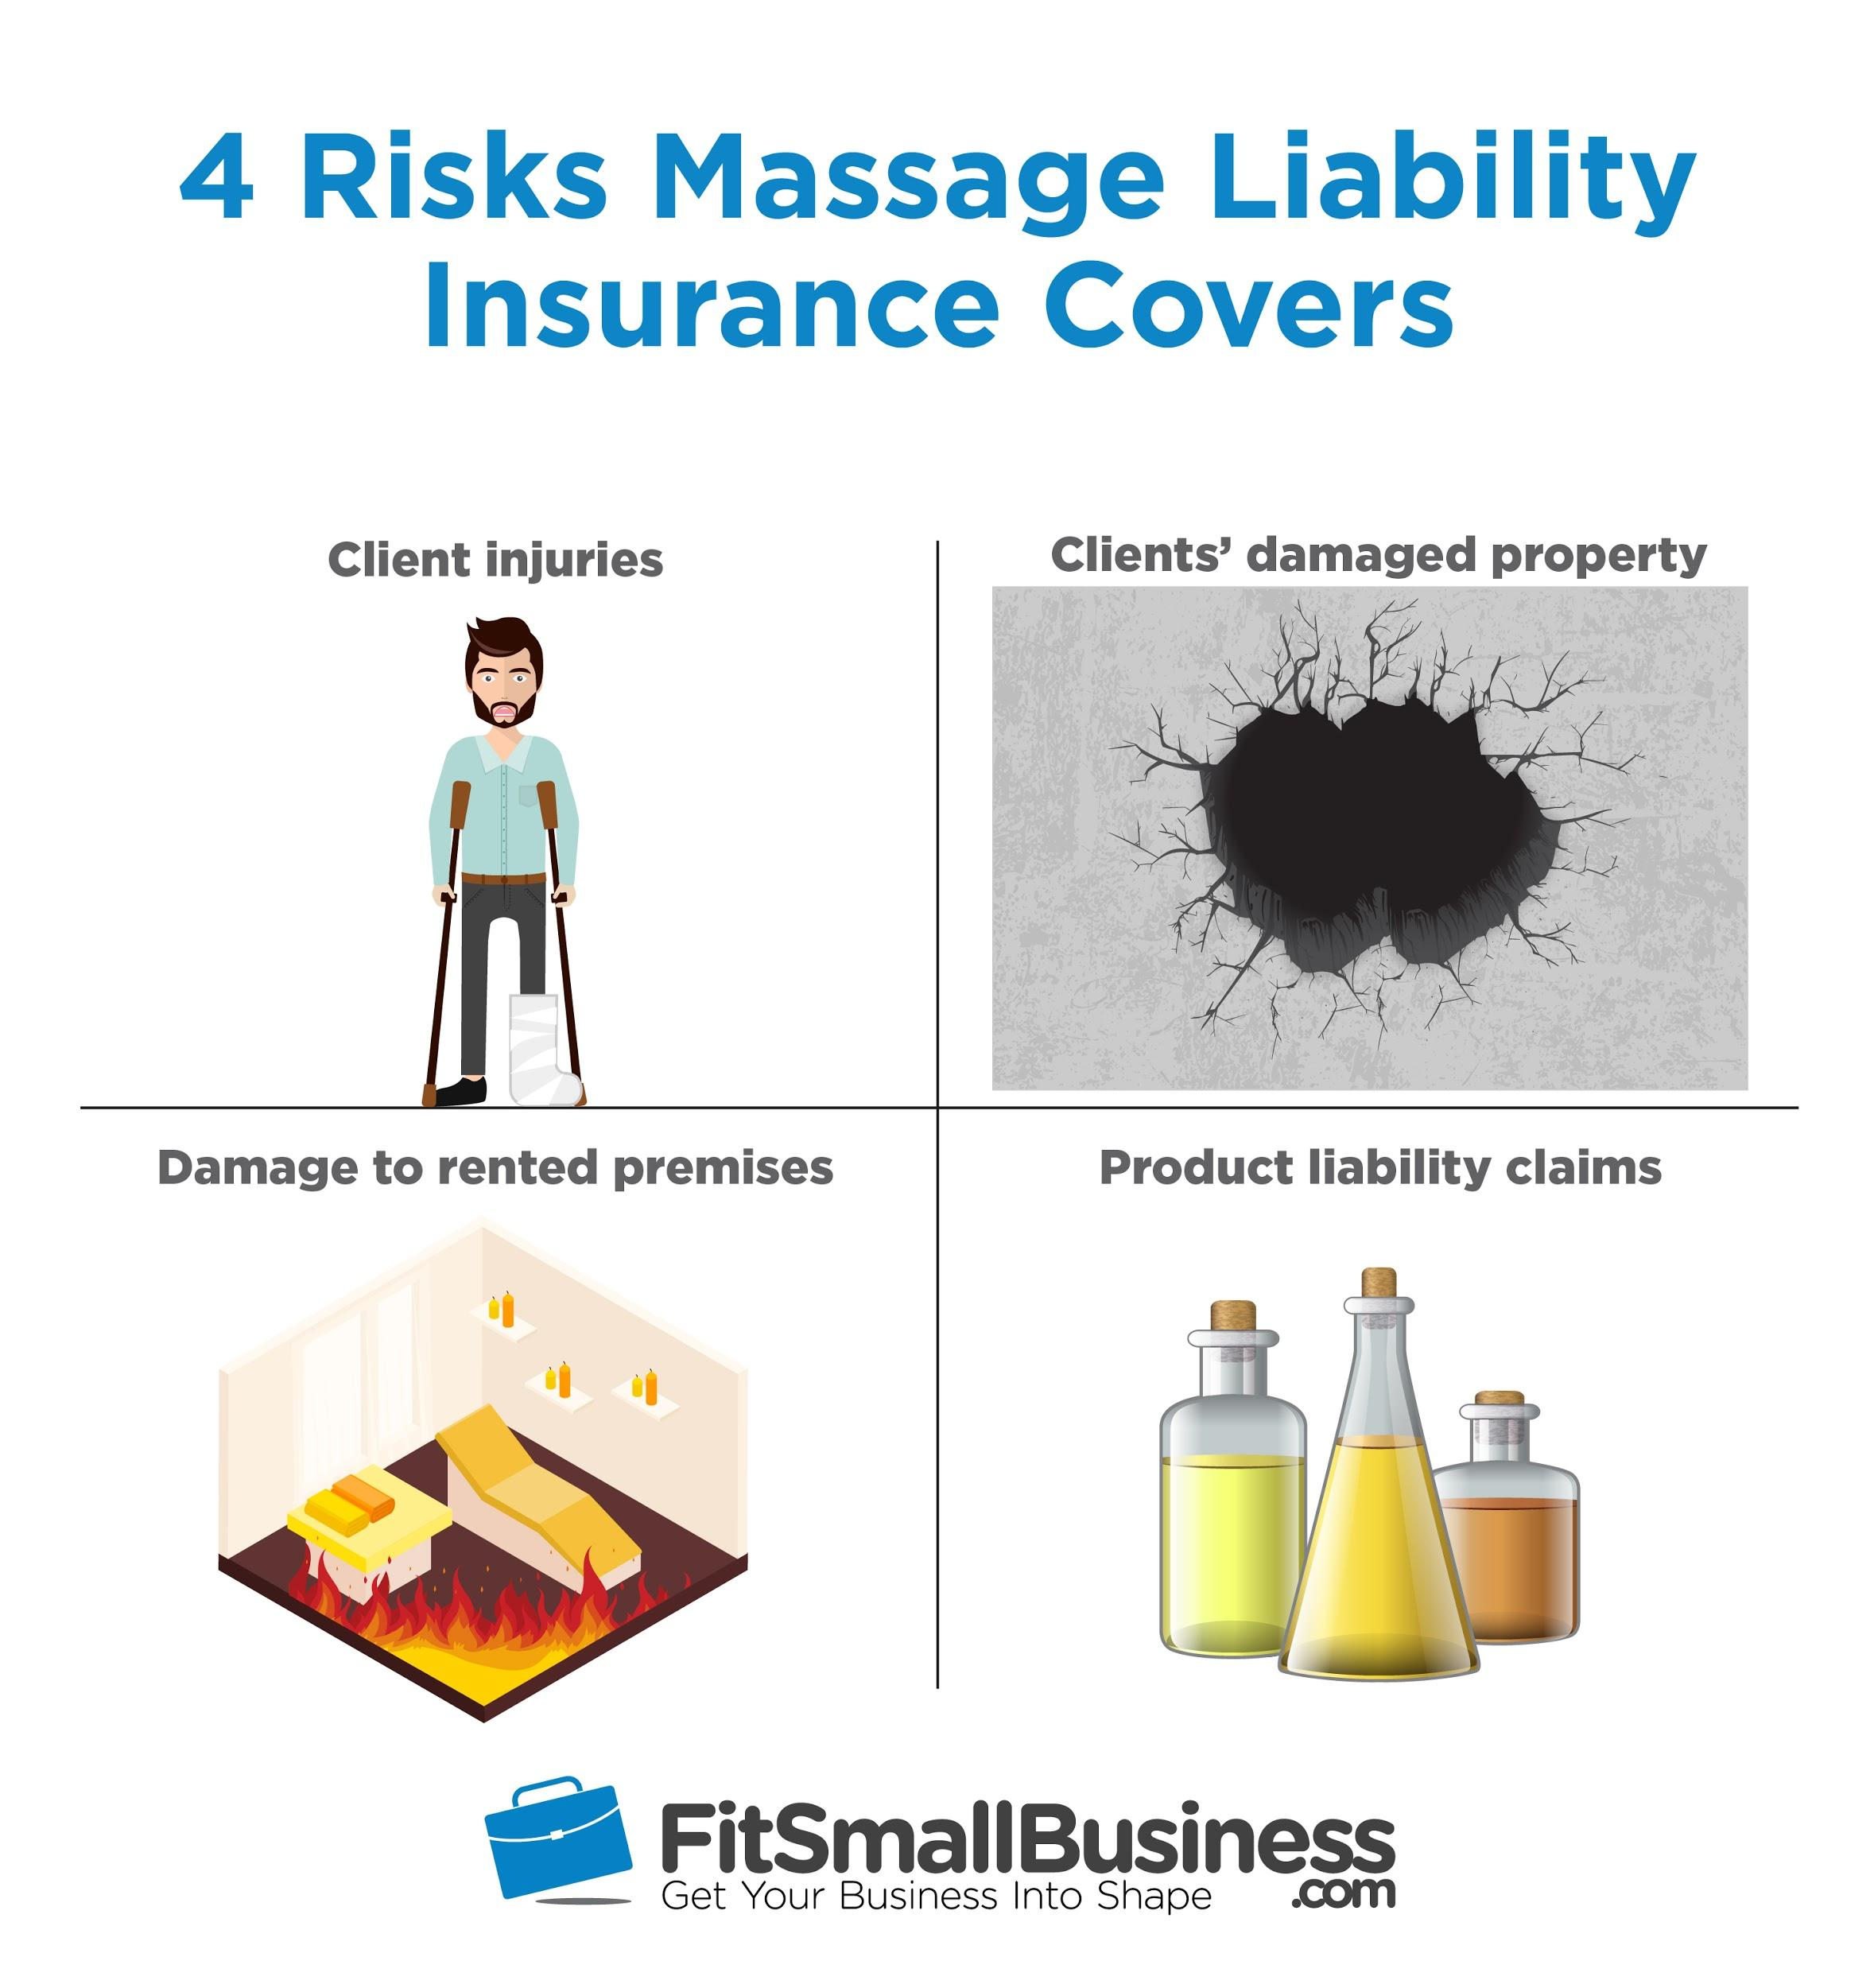 Infographic for 4 types of risks covered by massage liability insurance